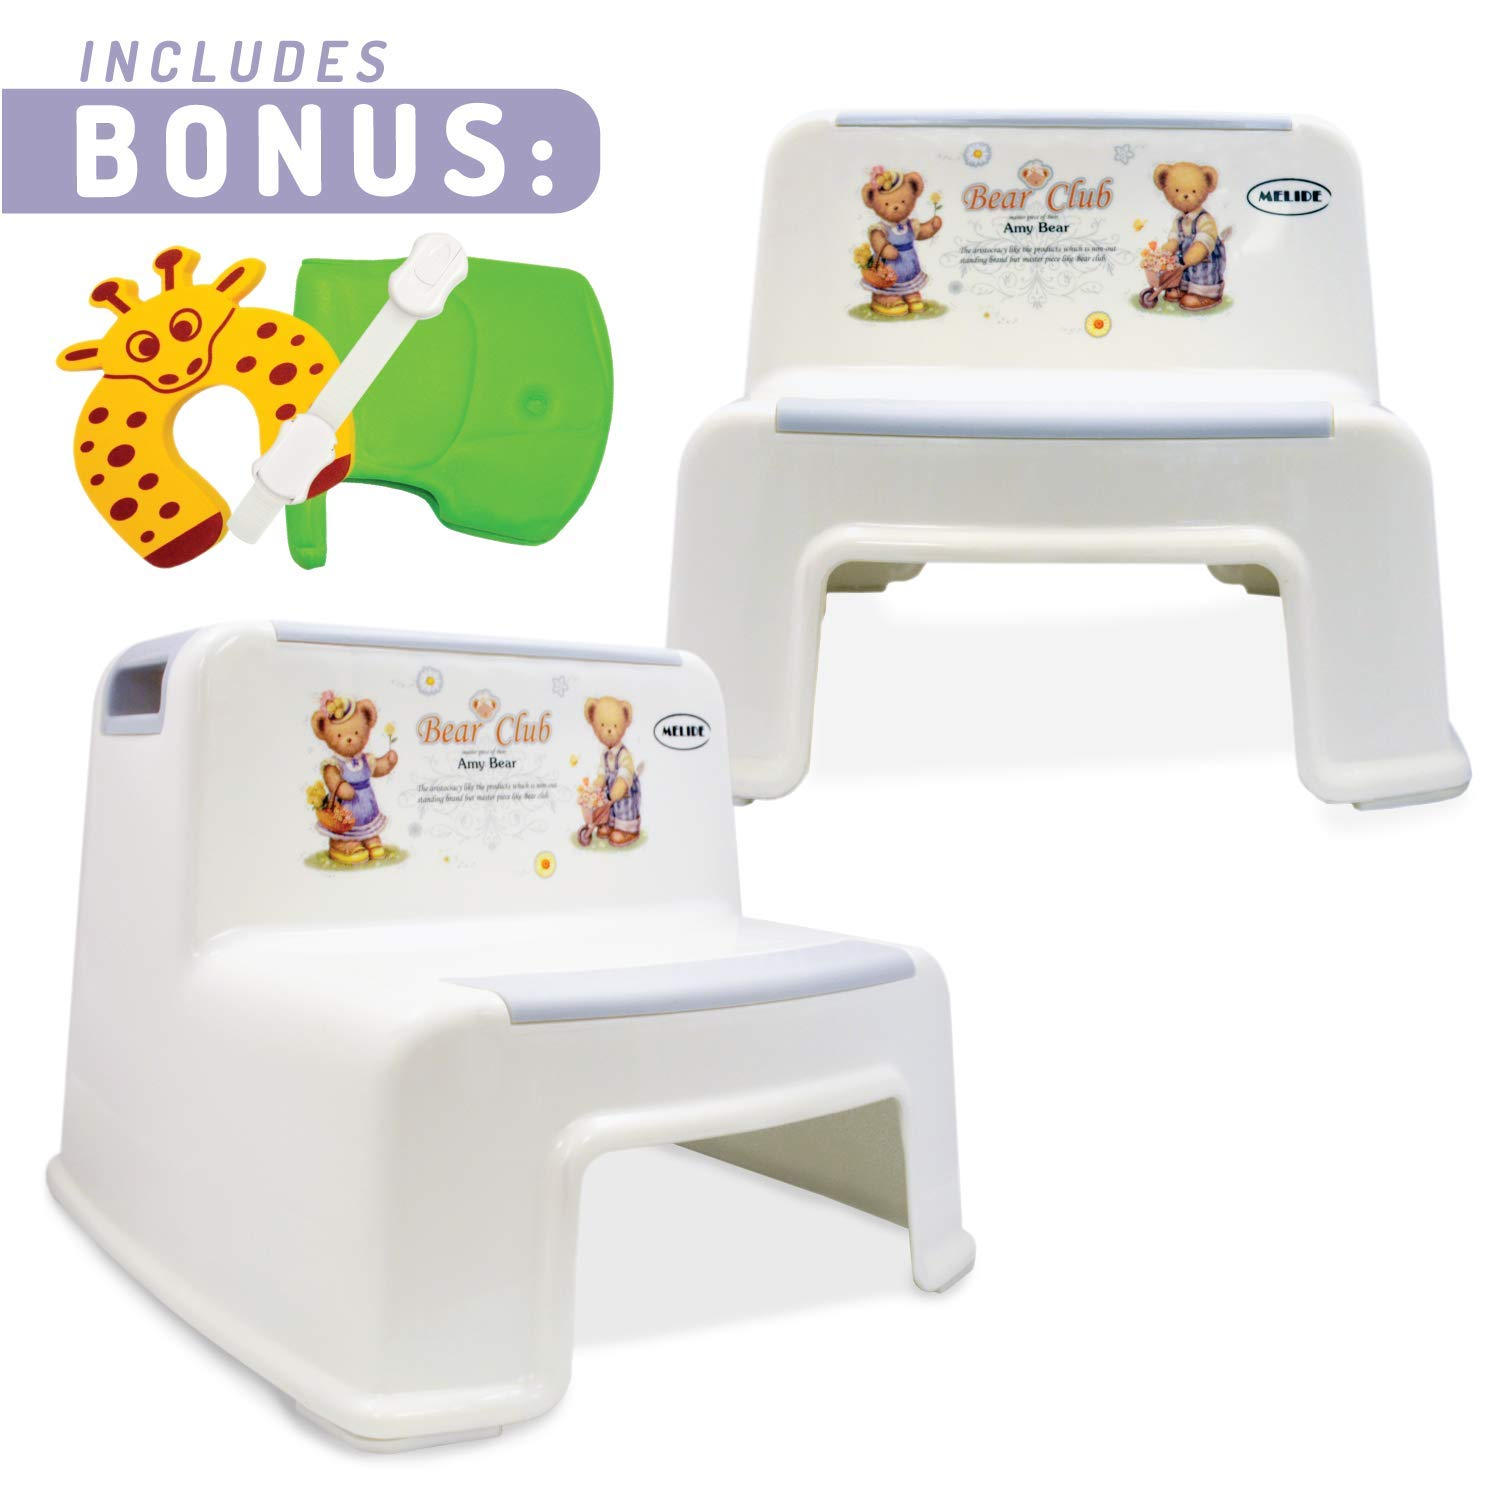 2 Step Stool For Kids (2 Pack)| Toddler Stool For Toilet and Potty Training with Slip Resistant and Soft Grip For Comfort | Dual Height and Wide Steps For Use in the Bathroom and Kitchen By MeliDe by MELIDE